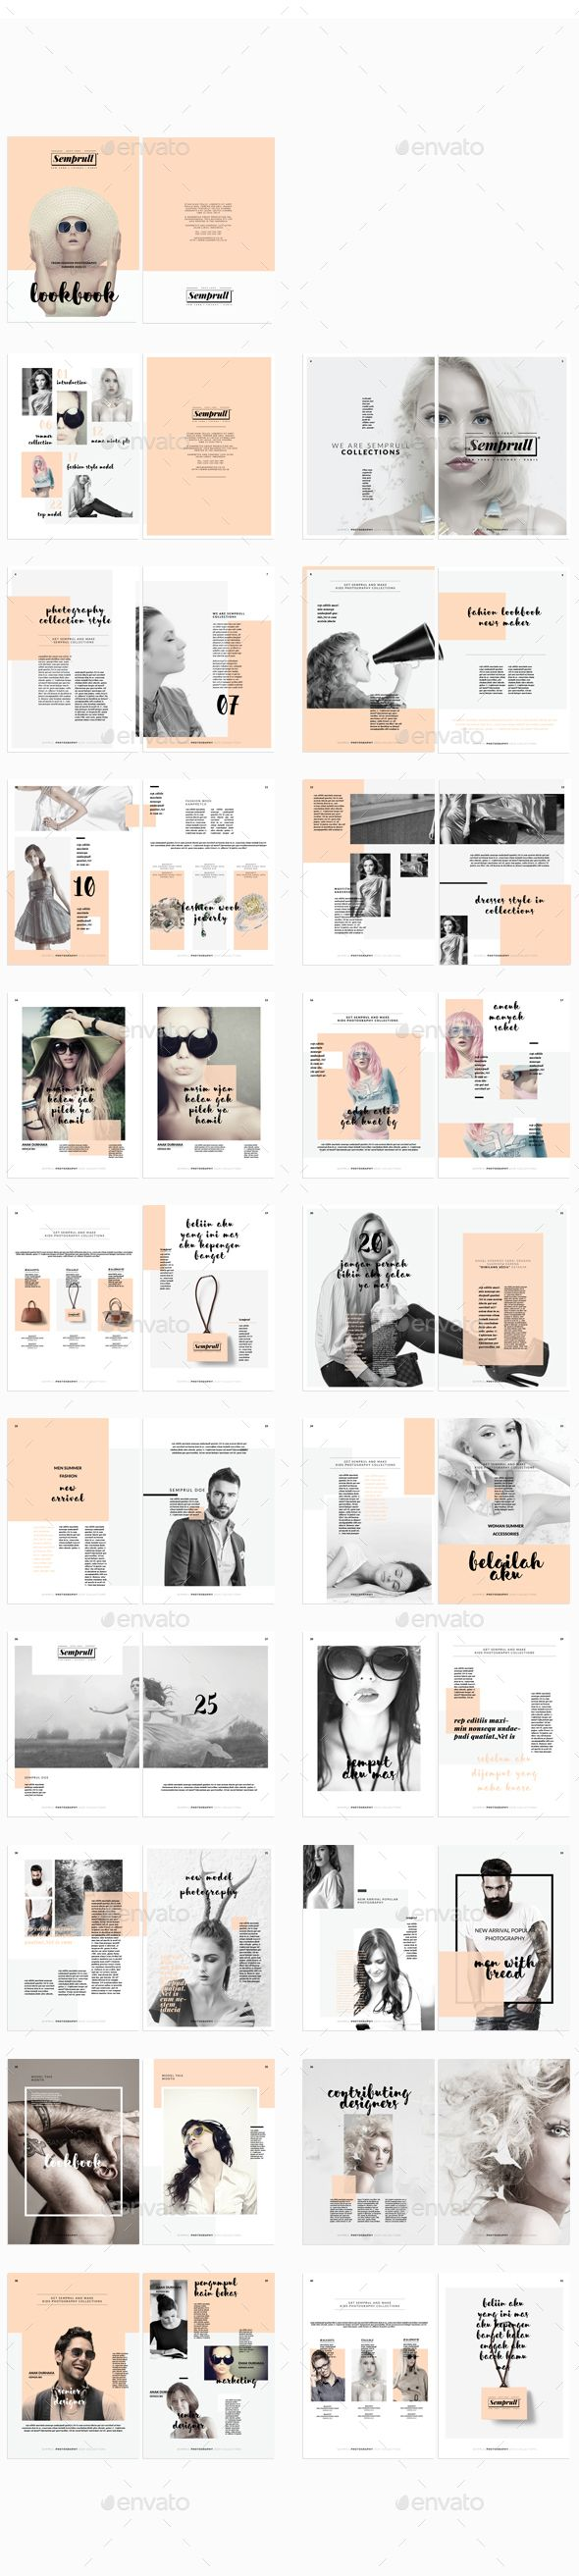 Pin by best graphic design on lookbook templates pinterest hire a freelance graphic designer services today and receive your graphic design project done remotely online within maxwellsz